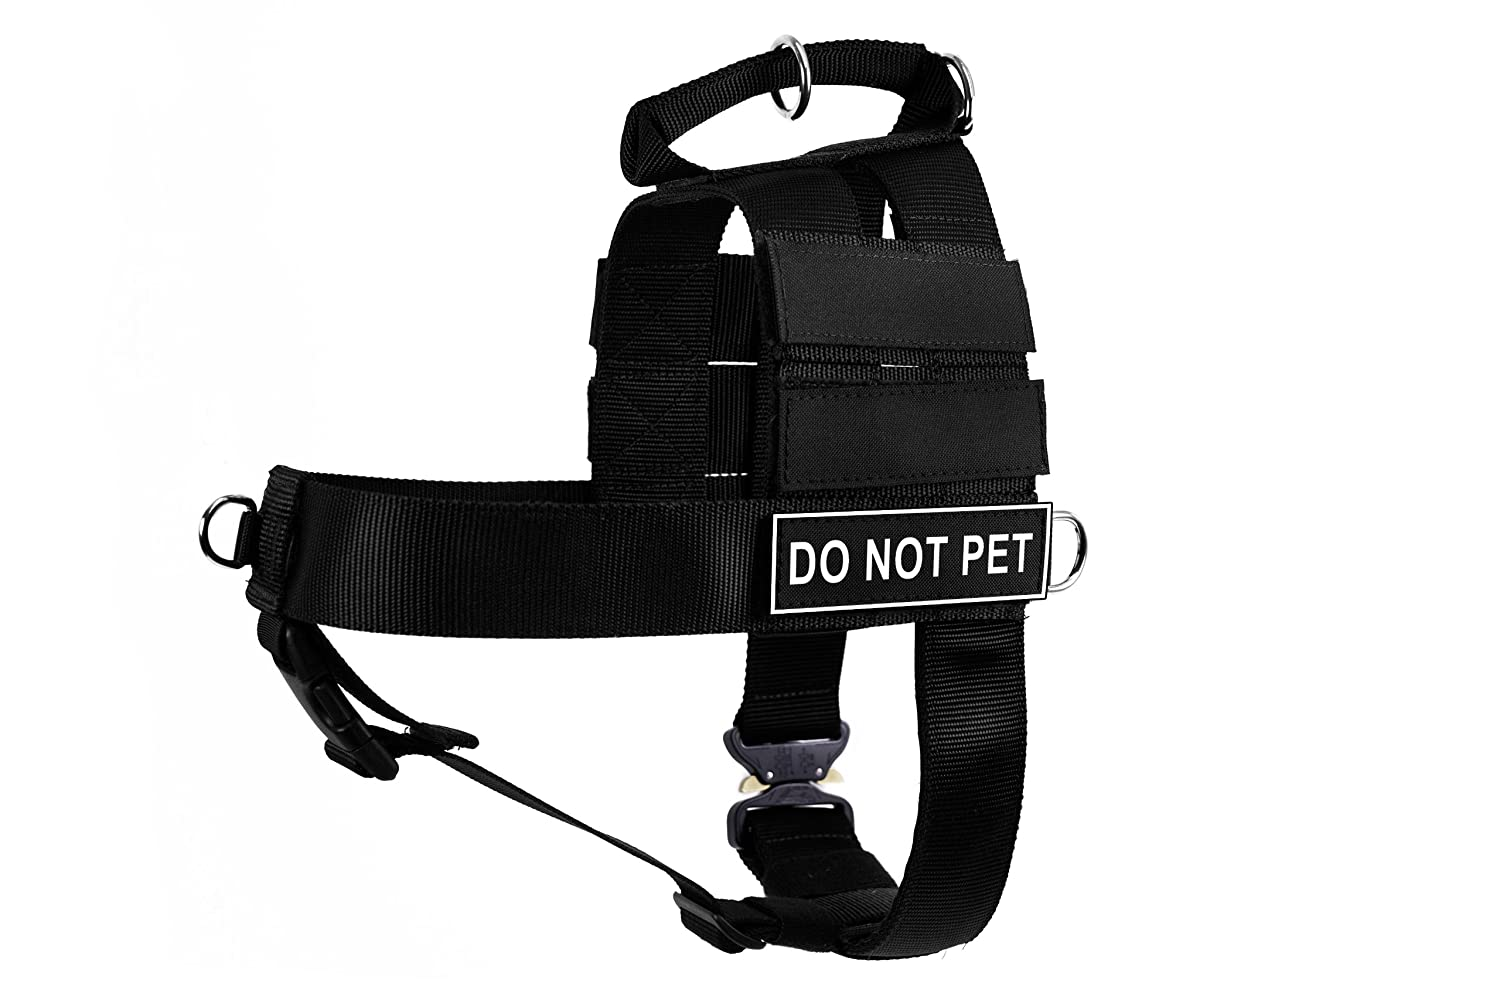 Dean & Tyler DT Cobra Do Not Pet  No Pull Harness, Medium, Black